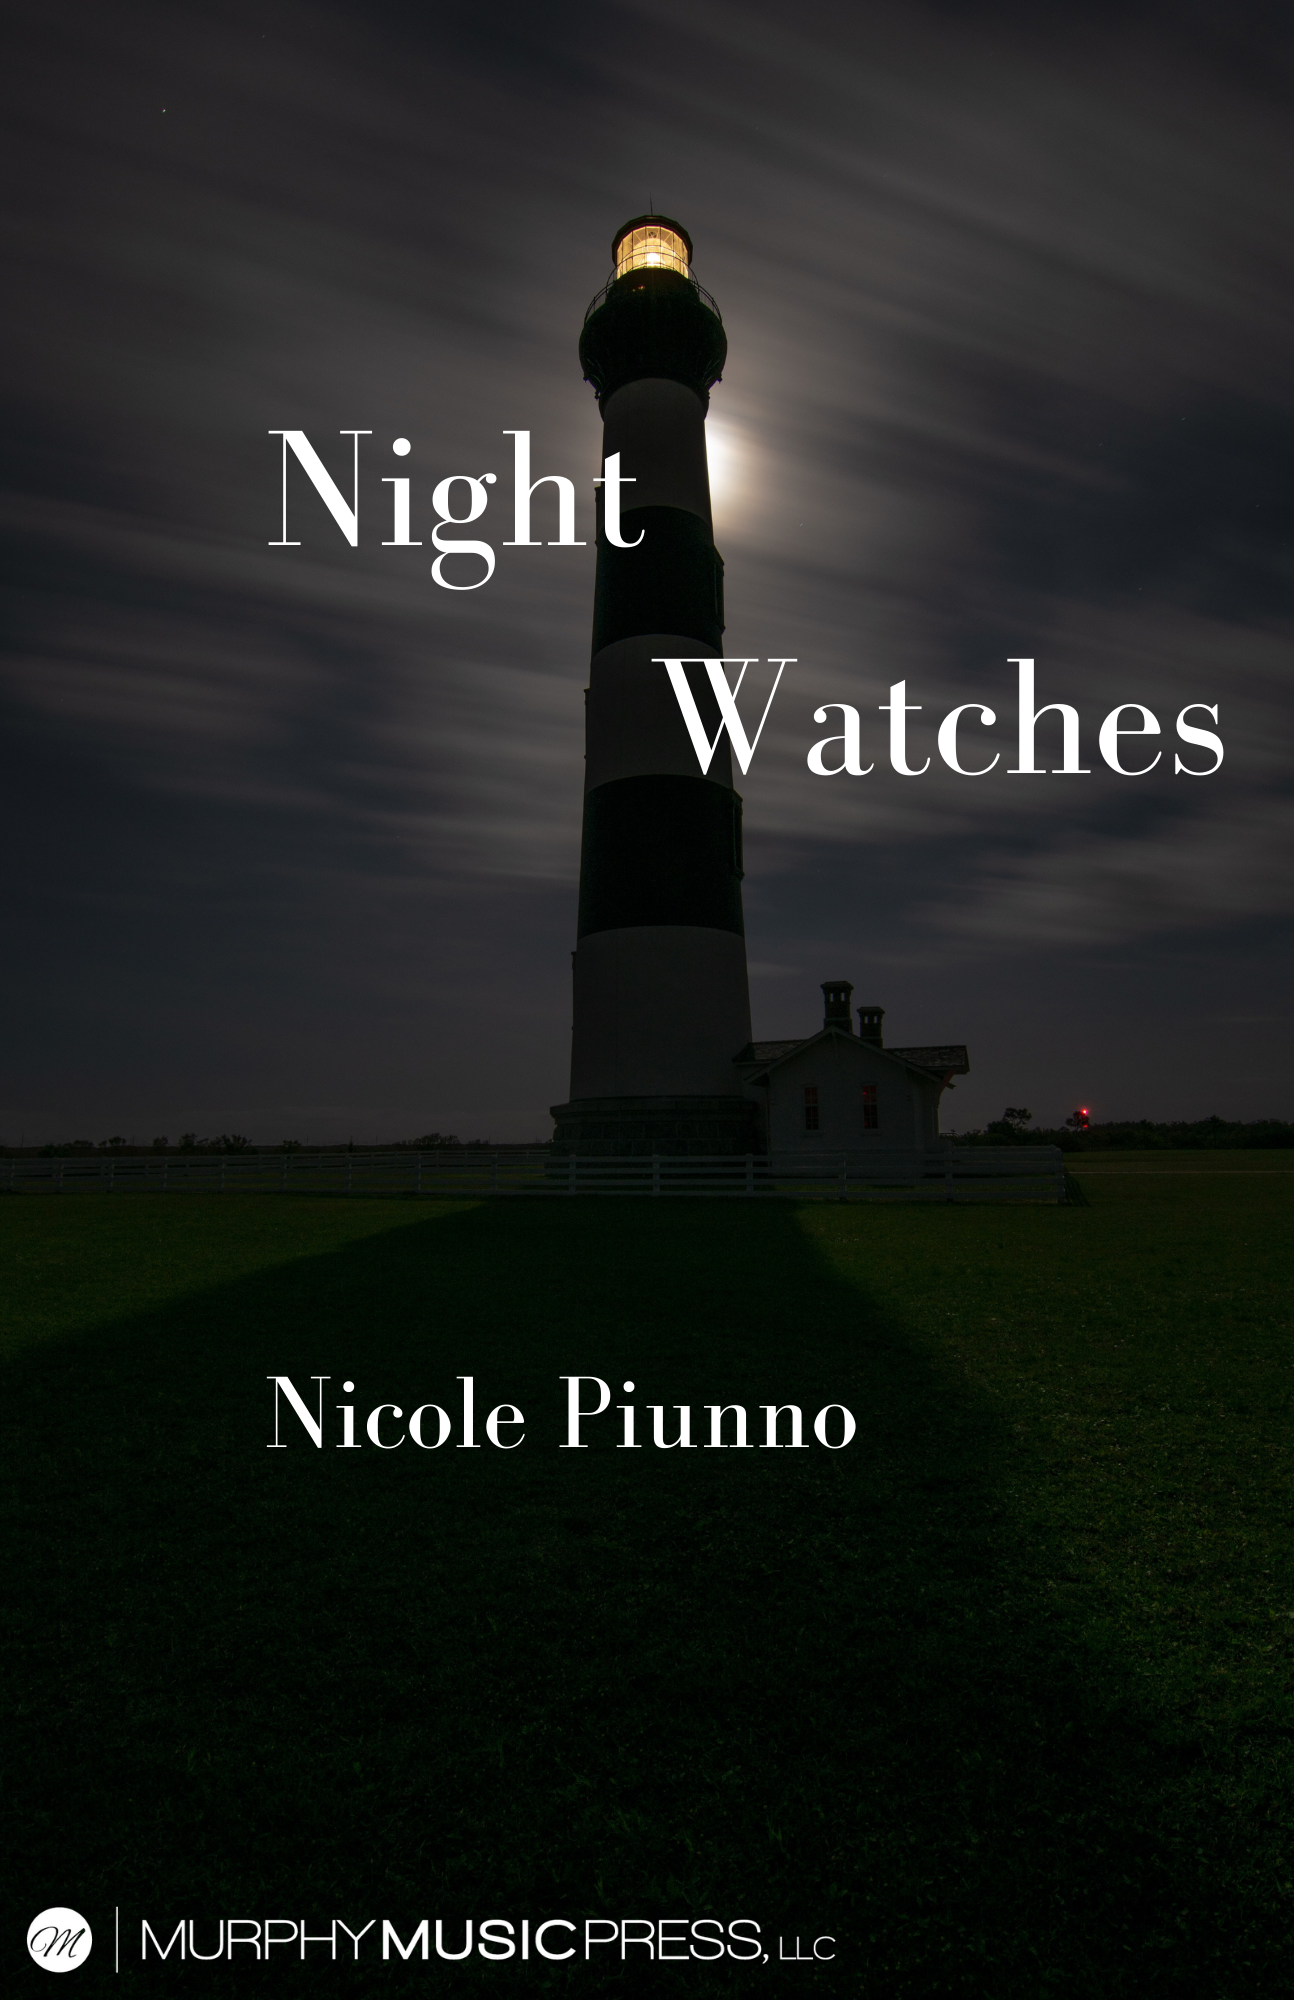 Night Watches by Nicole Piunno